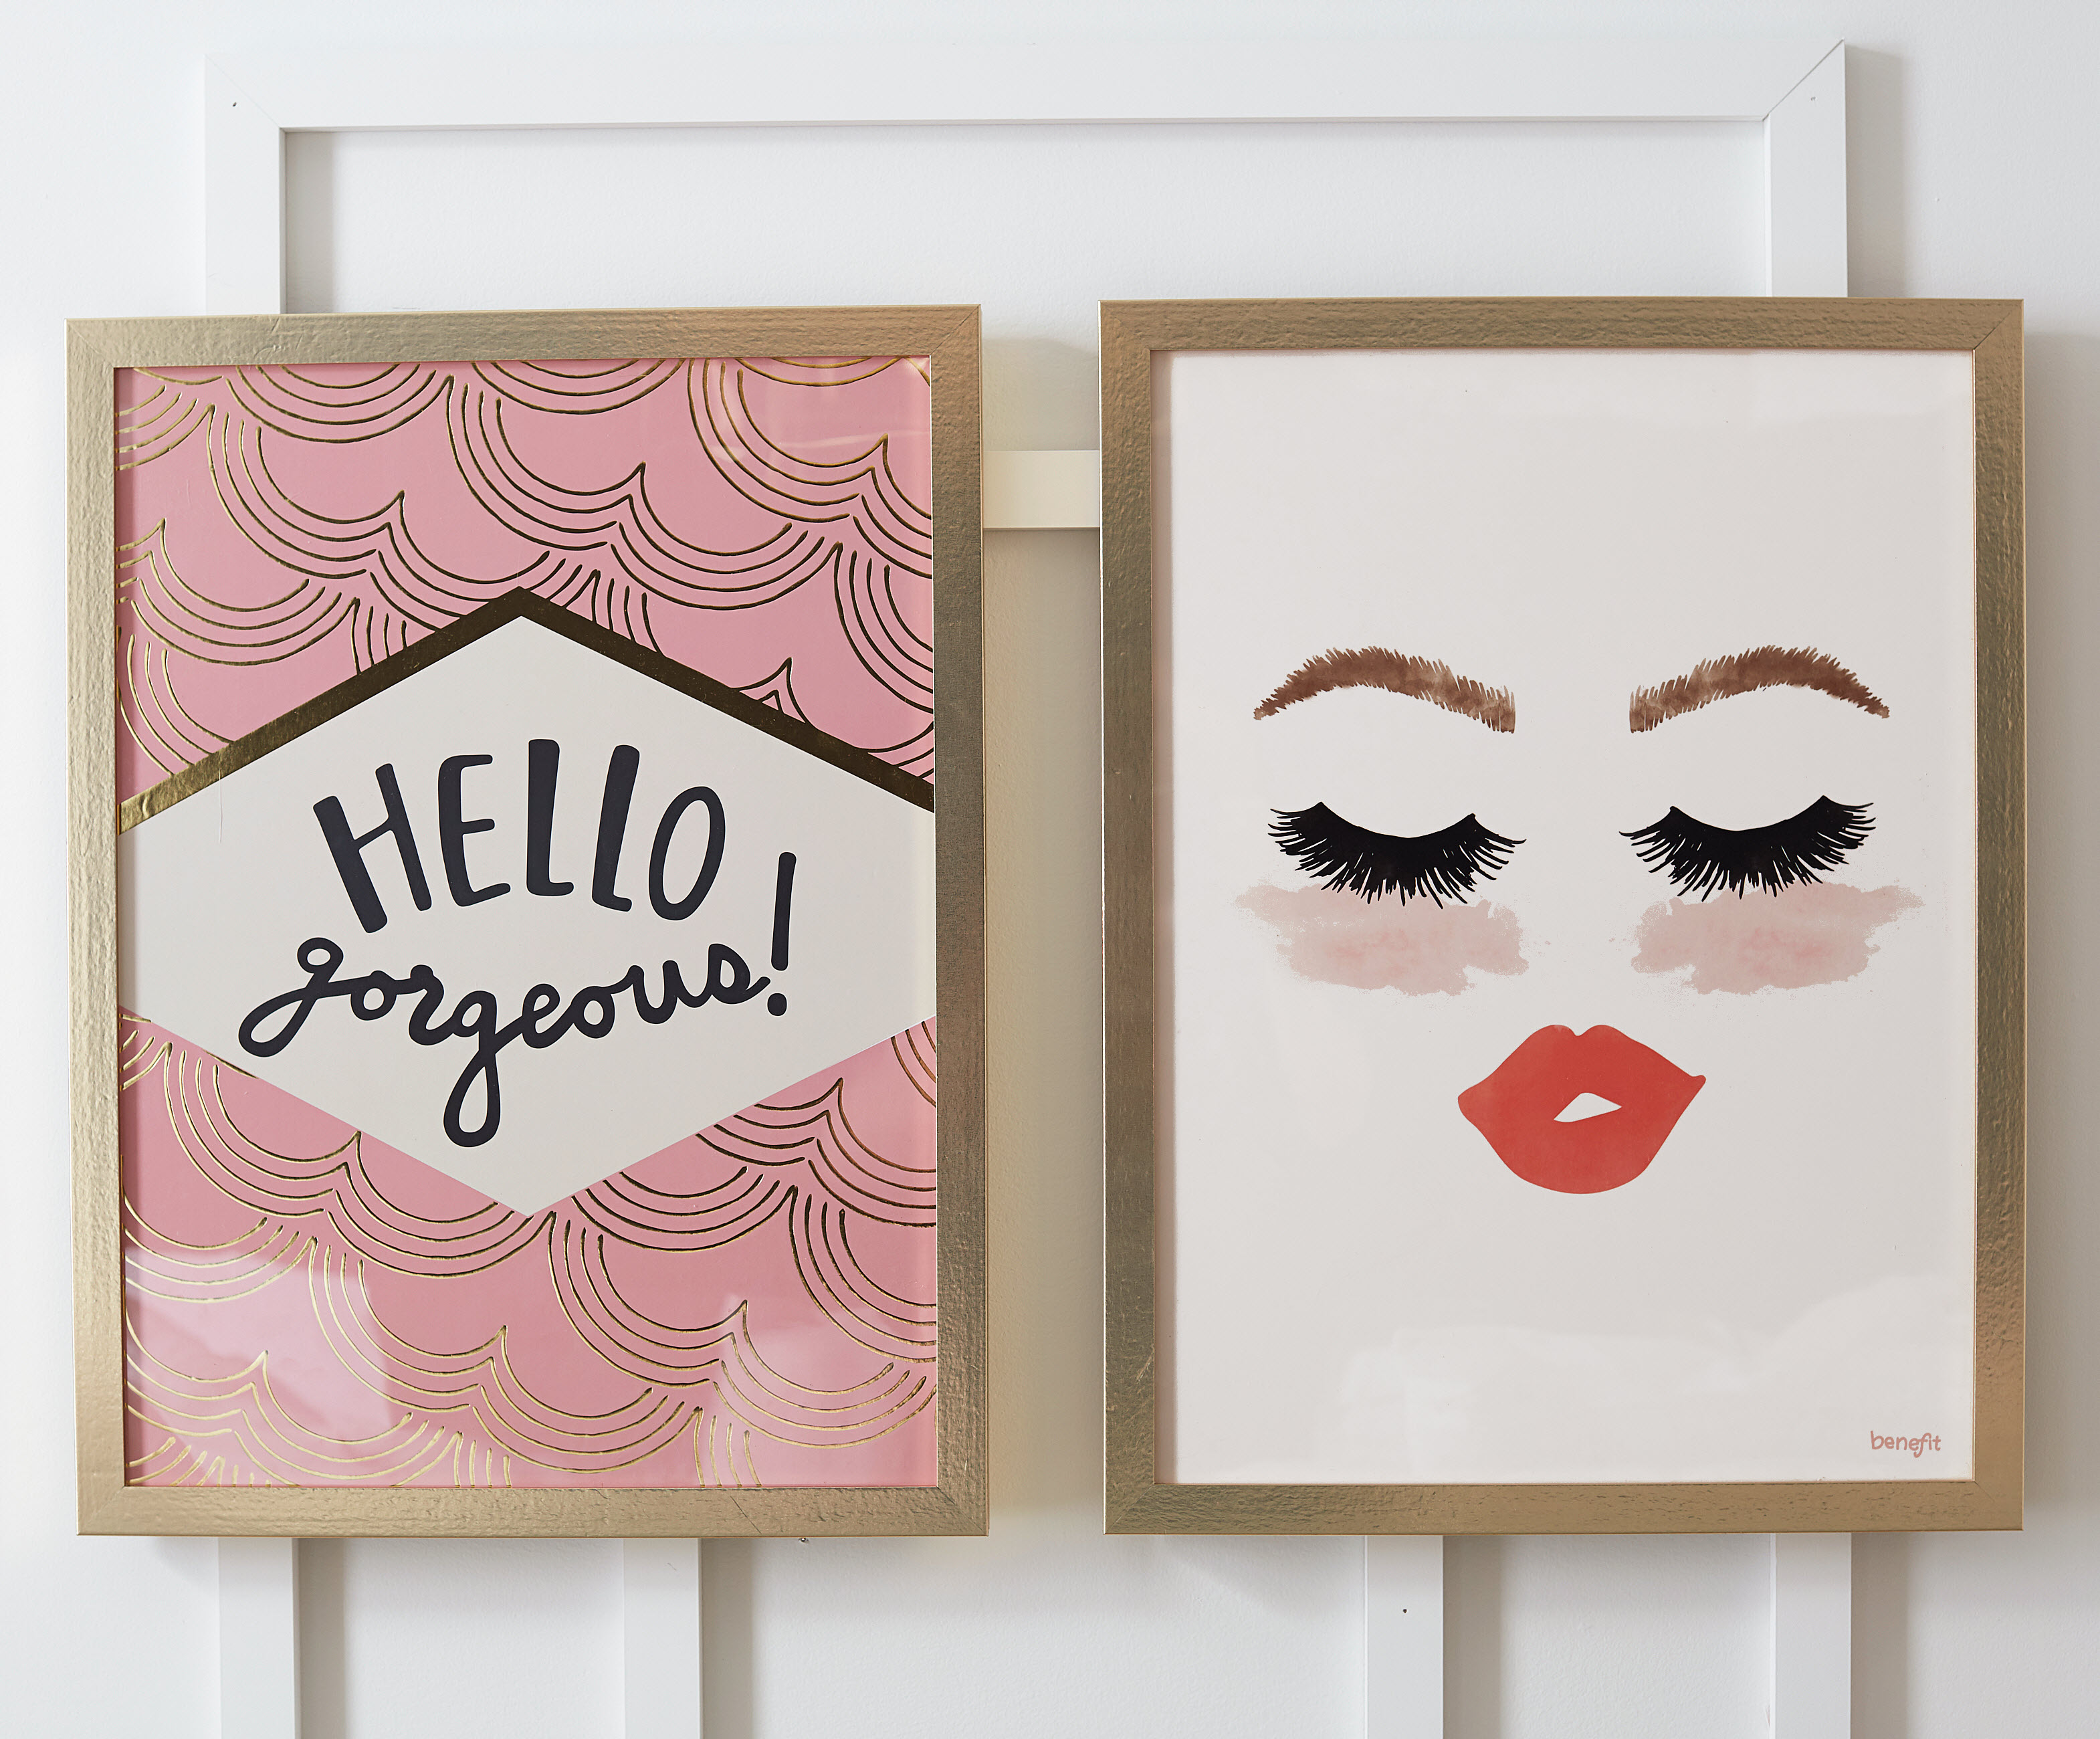 Benefit x PB Teen Wall Hangings